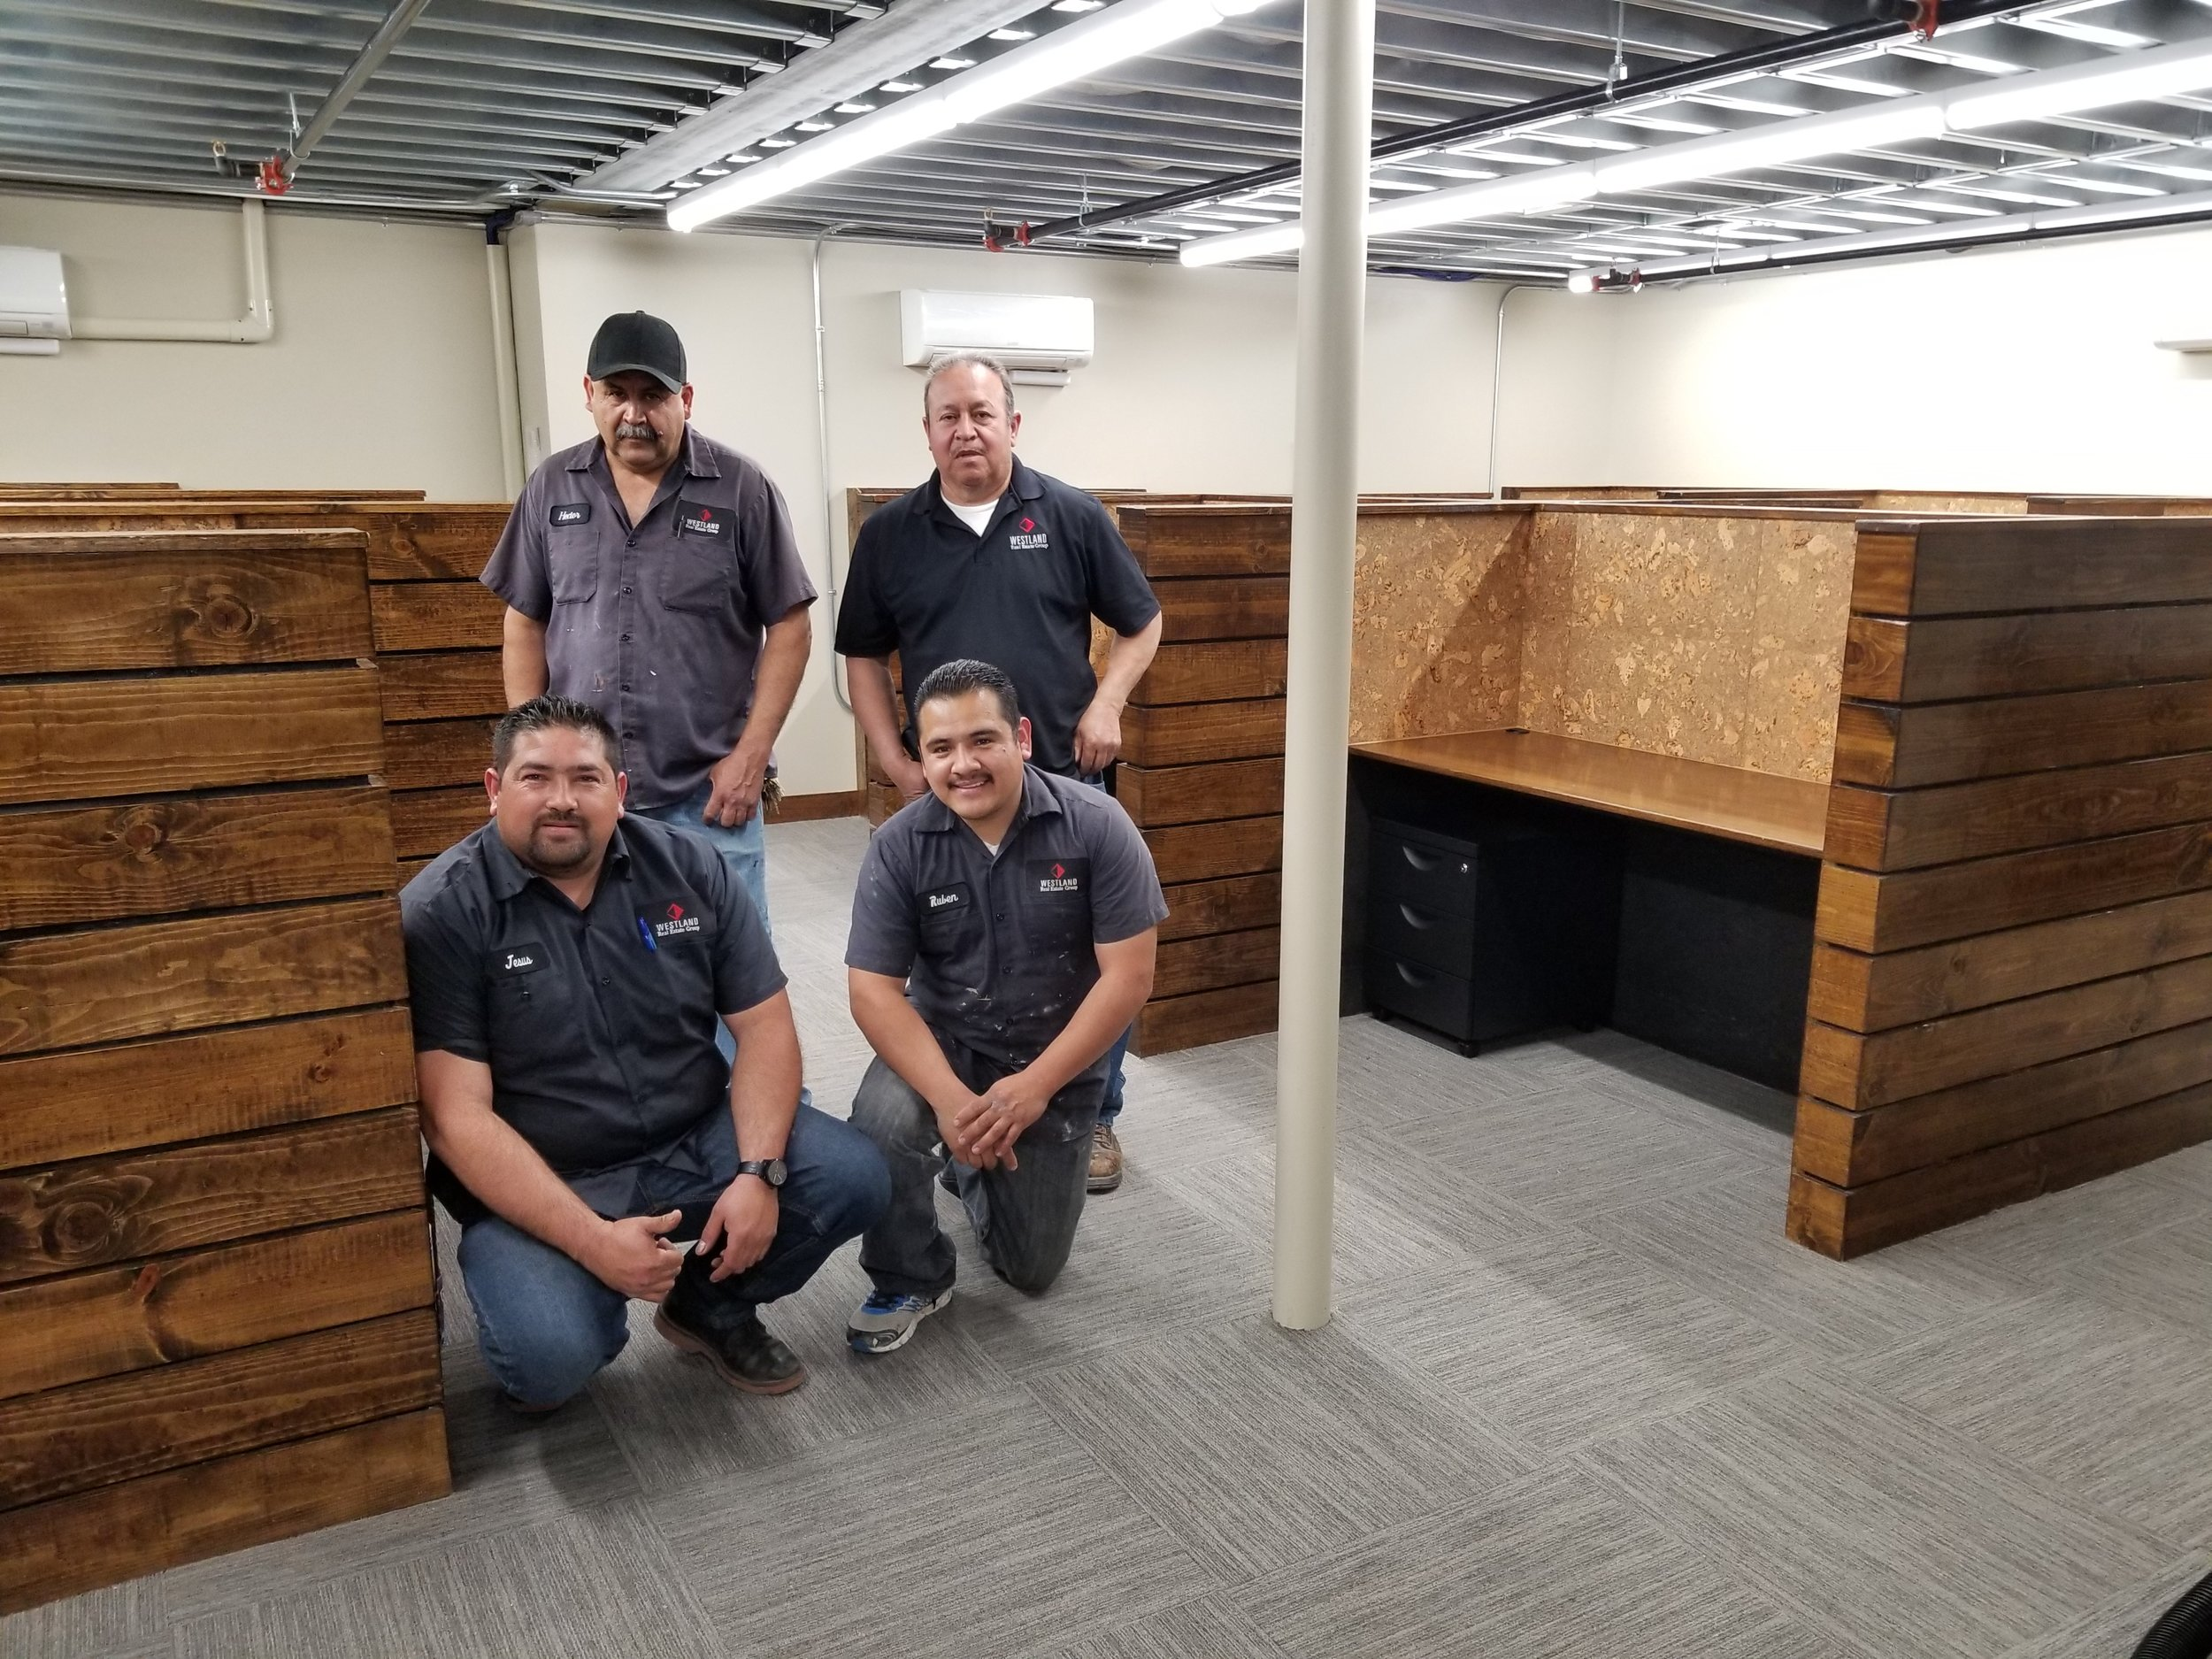 Our proud Maintenance Team: Jesus, Rafael, Hector, and Ruben.